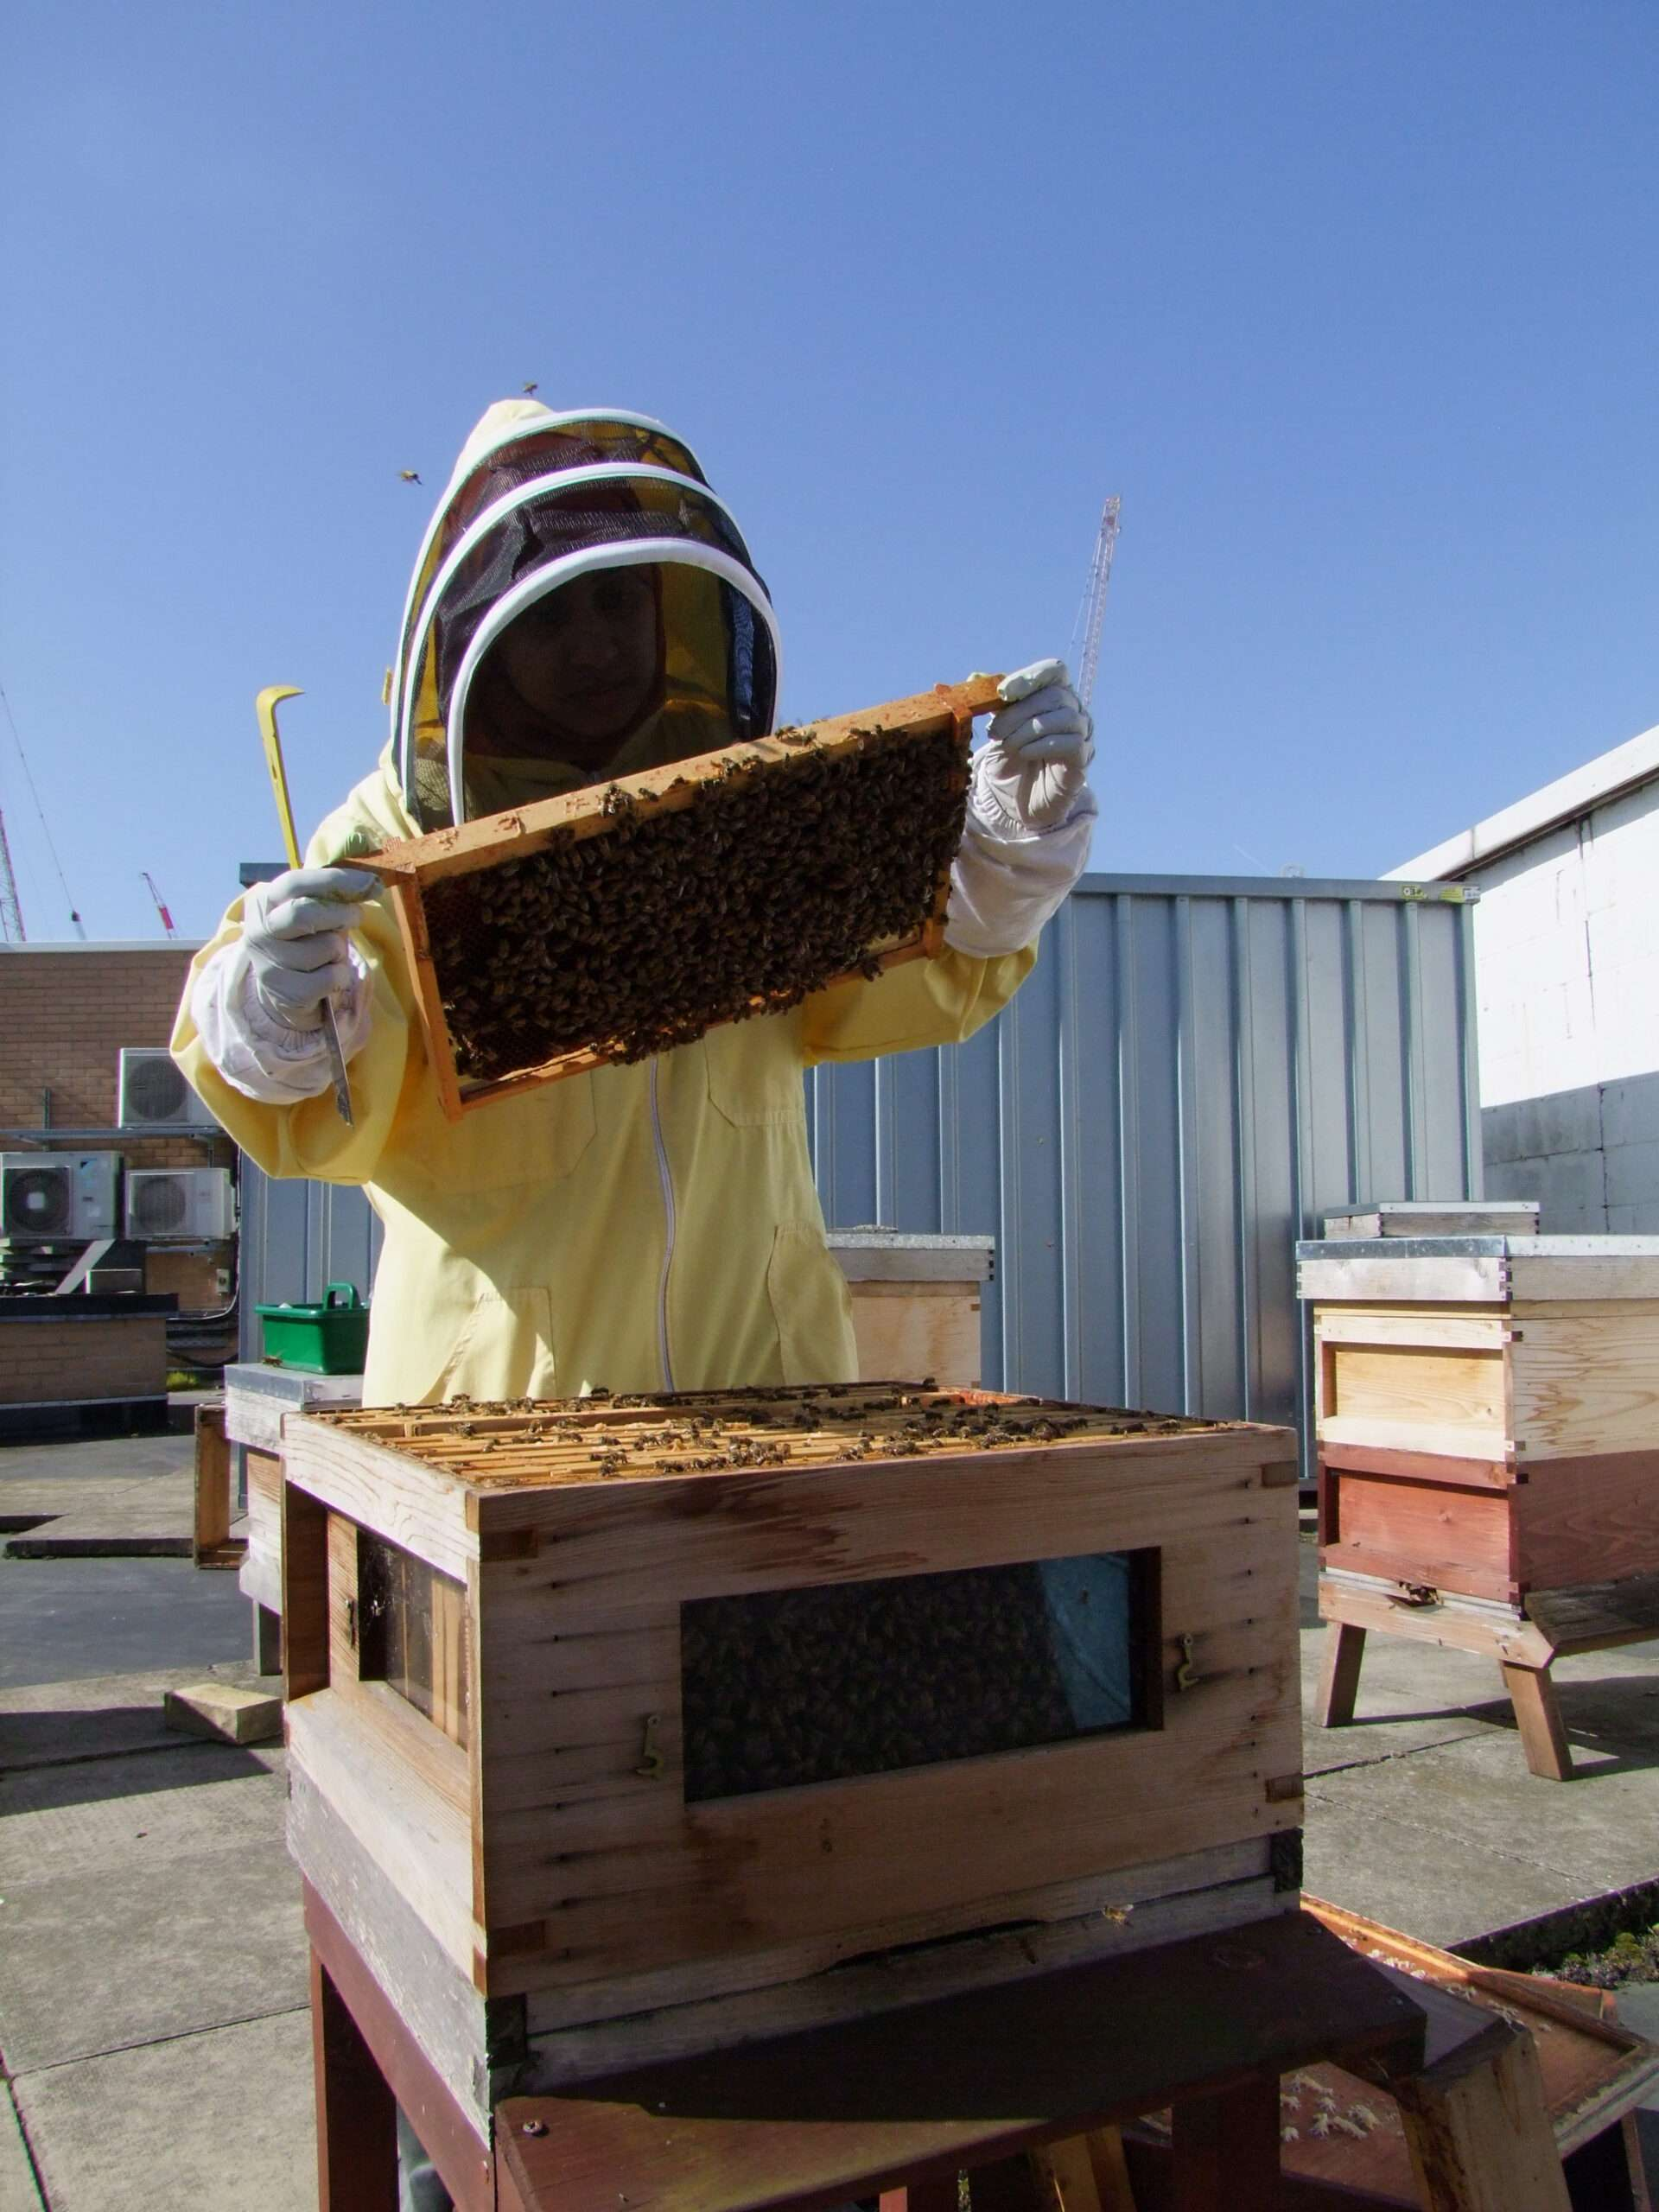 Salma checking bees on roof